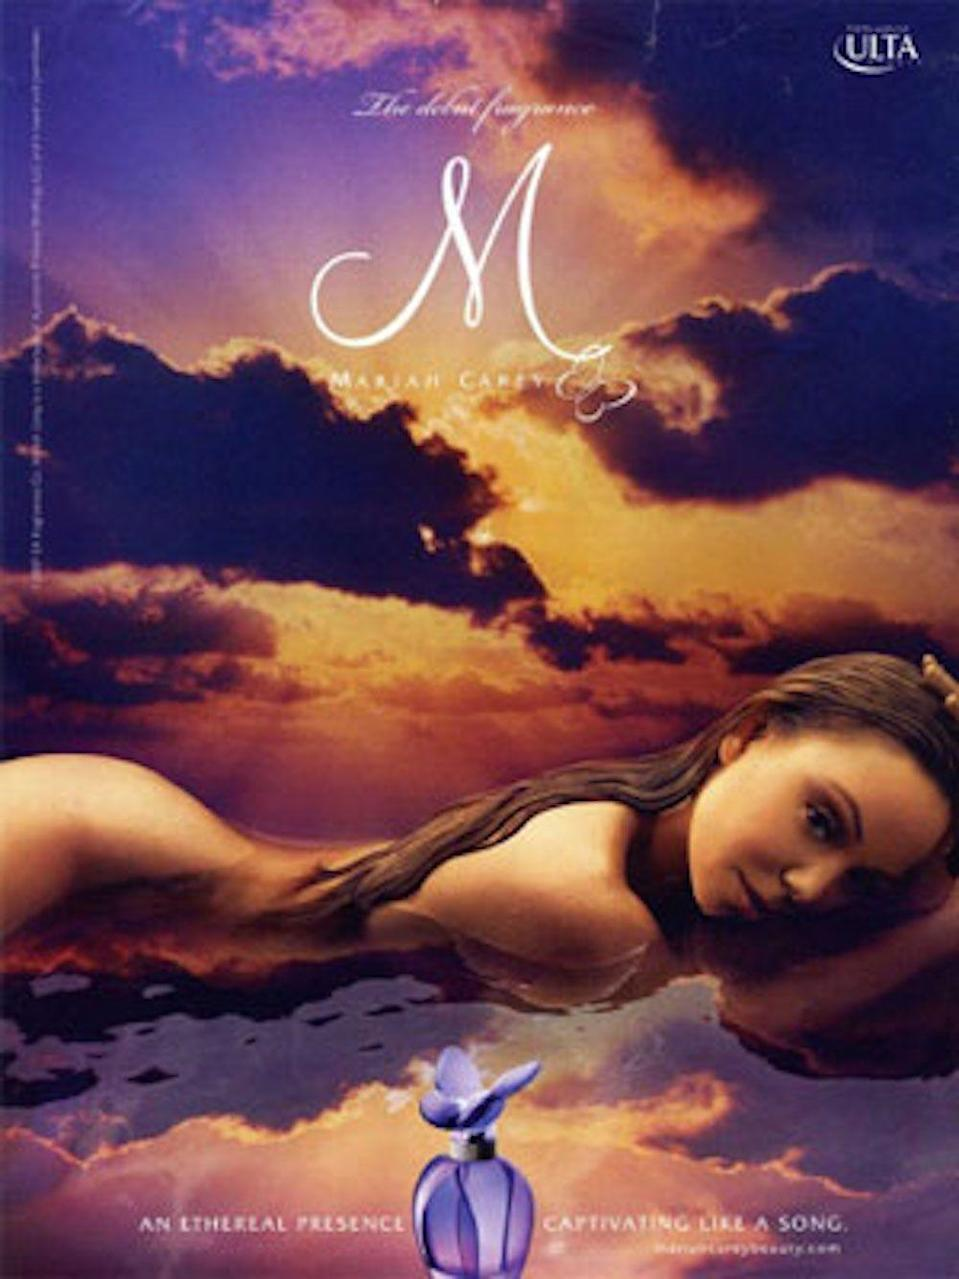 <p>Obsessed with the concept for this ad being Mariah Carey flopped face-first in what appears to be a puddle. </p>